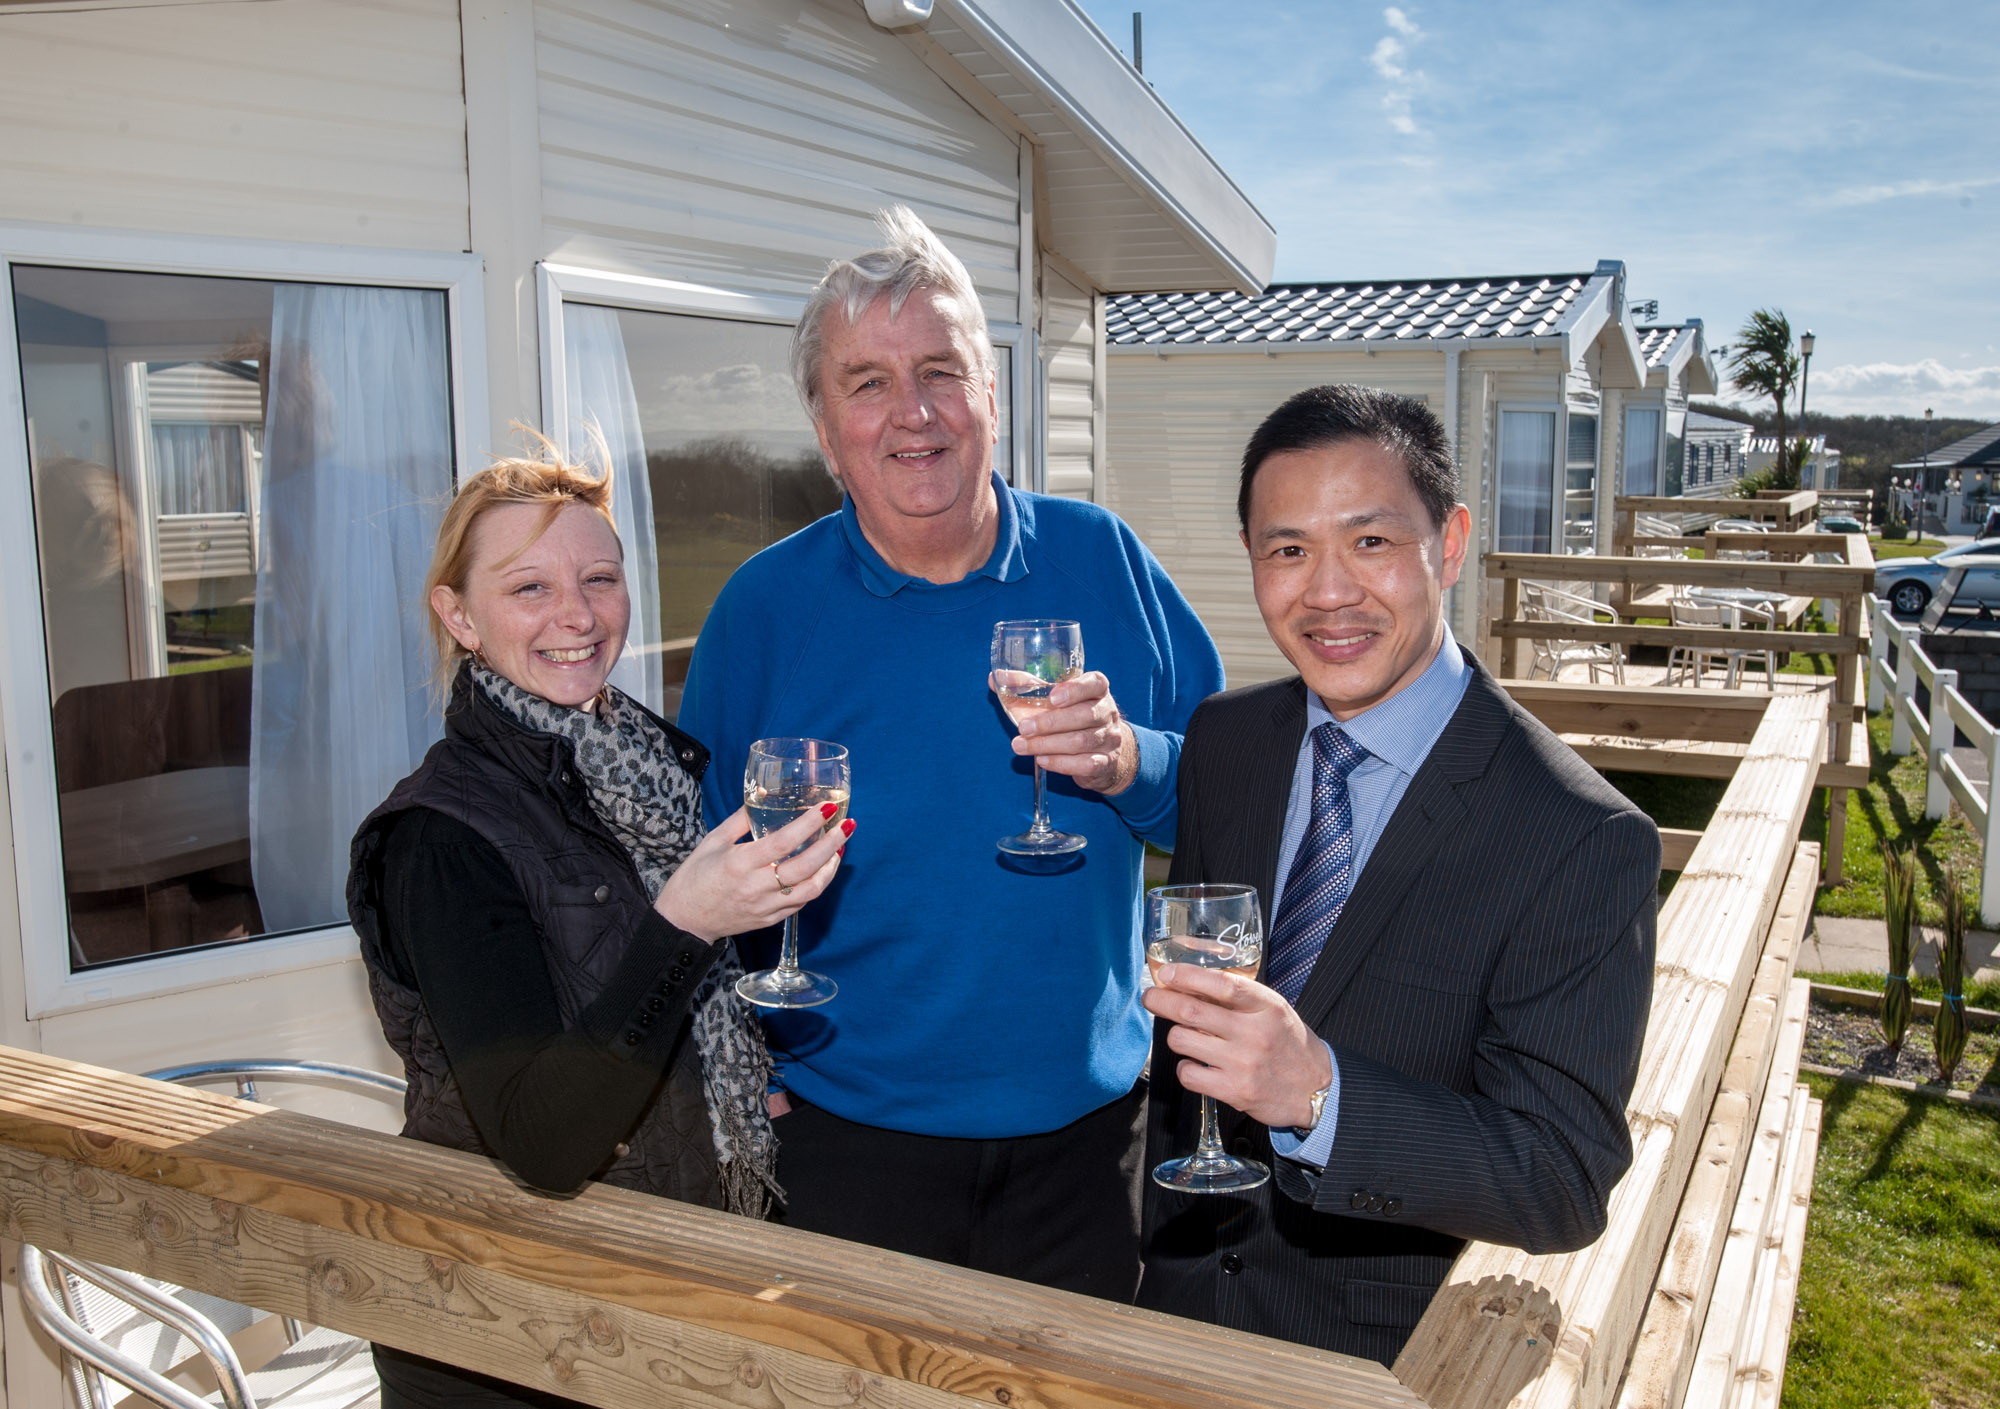 Rachael Hendy and Clive James of Beachside Holiday Park with NatWest's Keem Lau. Photo: submitted.